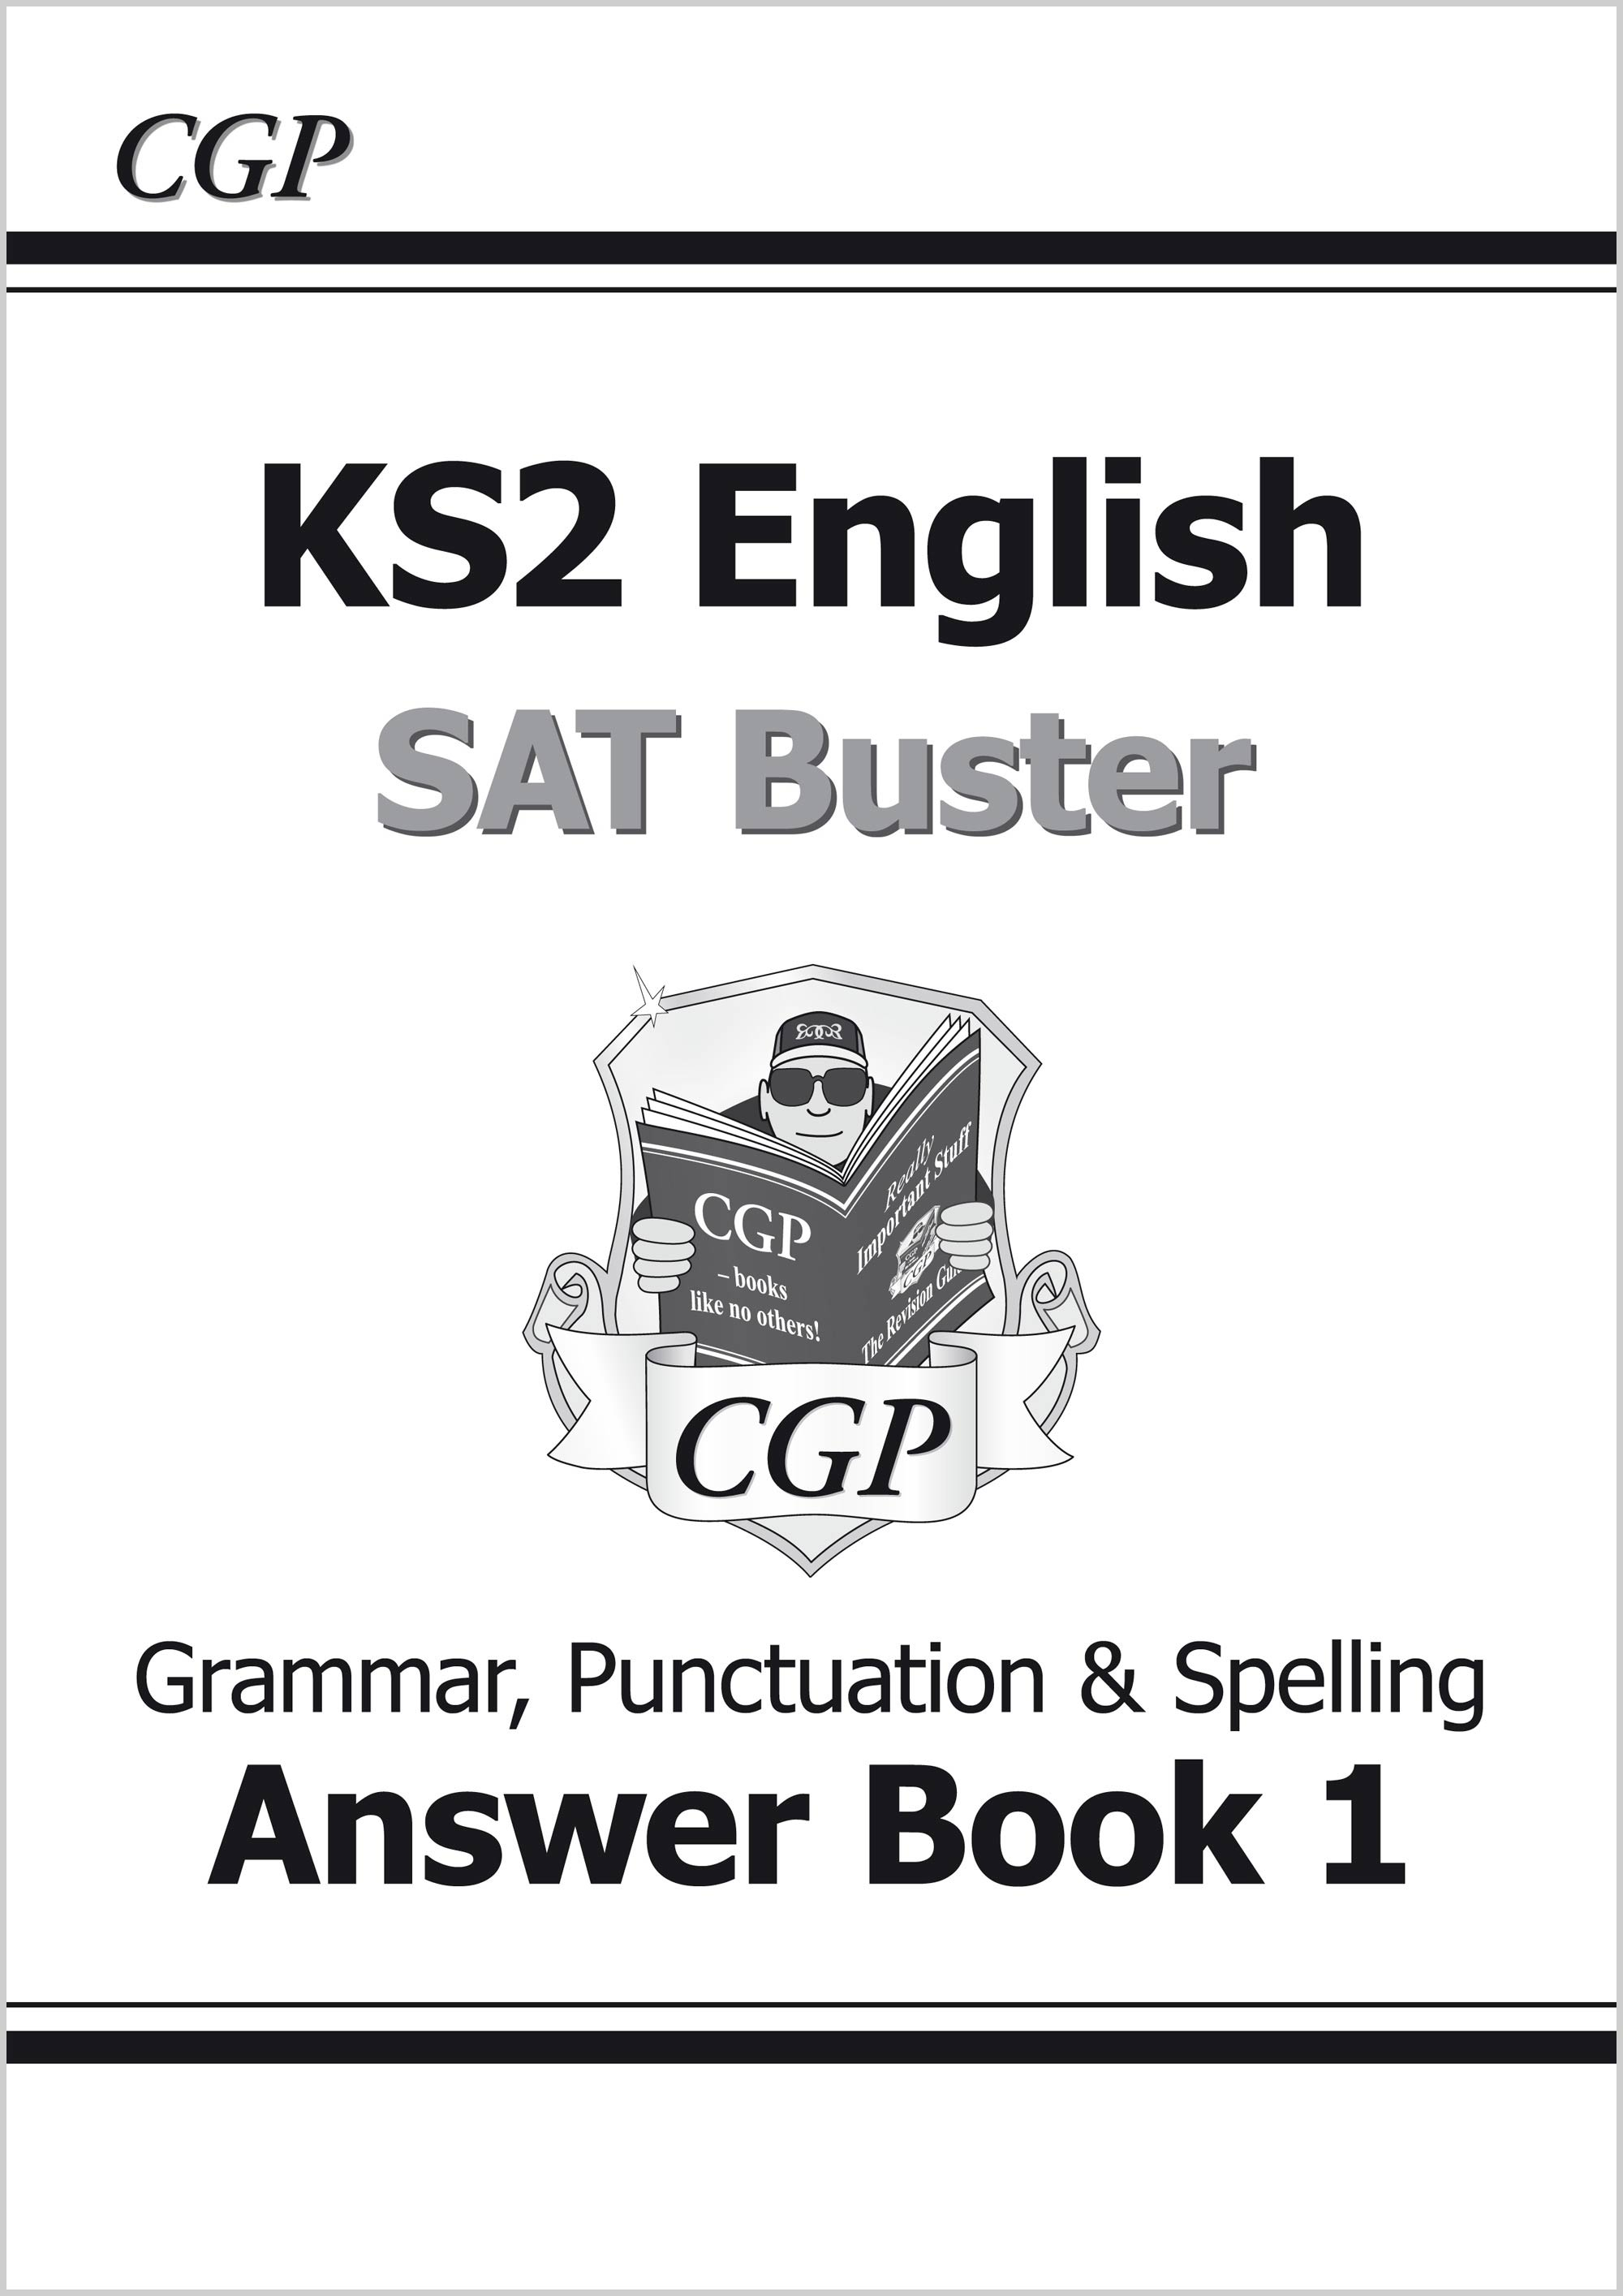 E6GA22 - KS2 English SAT Buster Book 1 Answers - Grammar, Punctuation & Spelling (for the 2020 tests